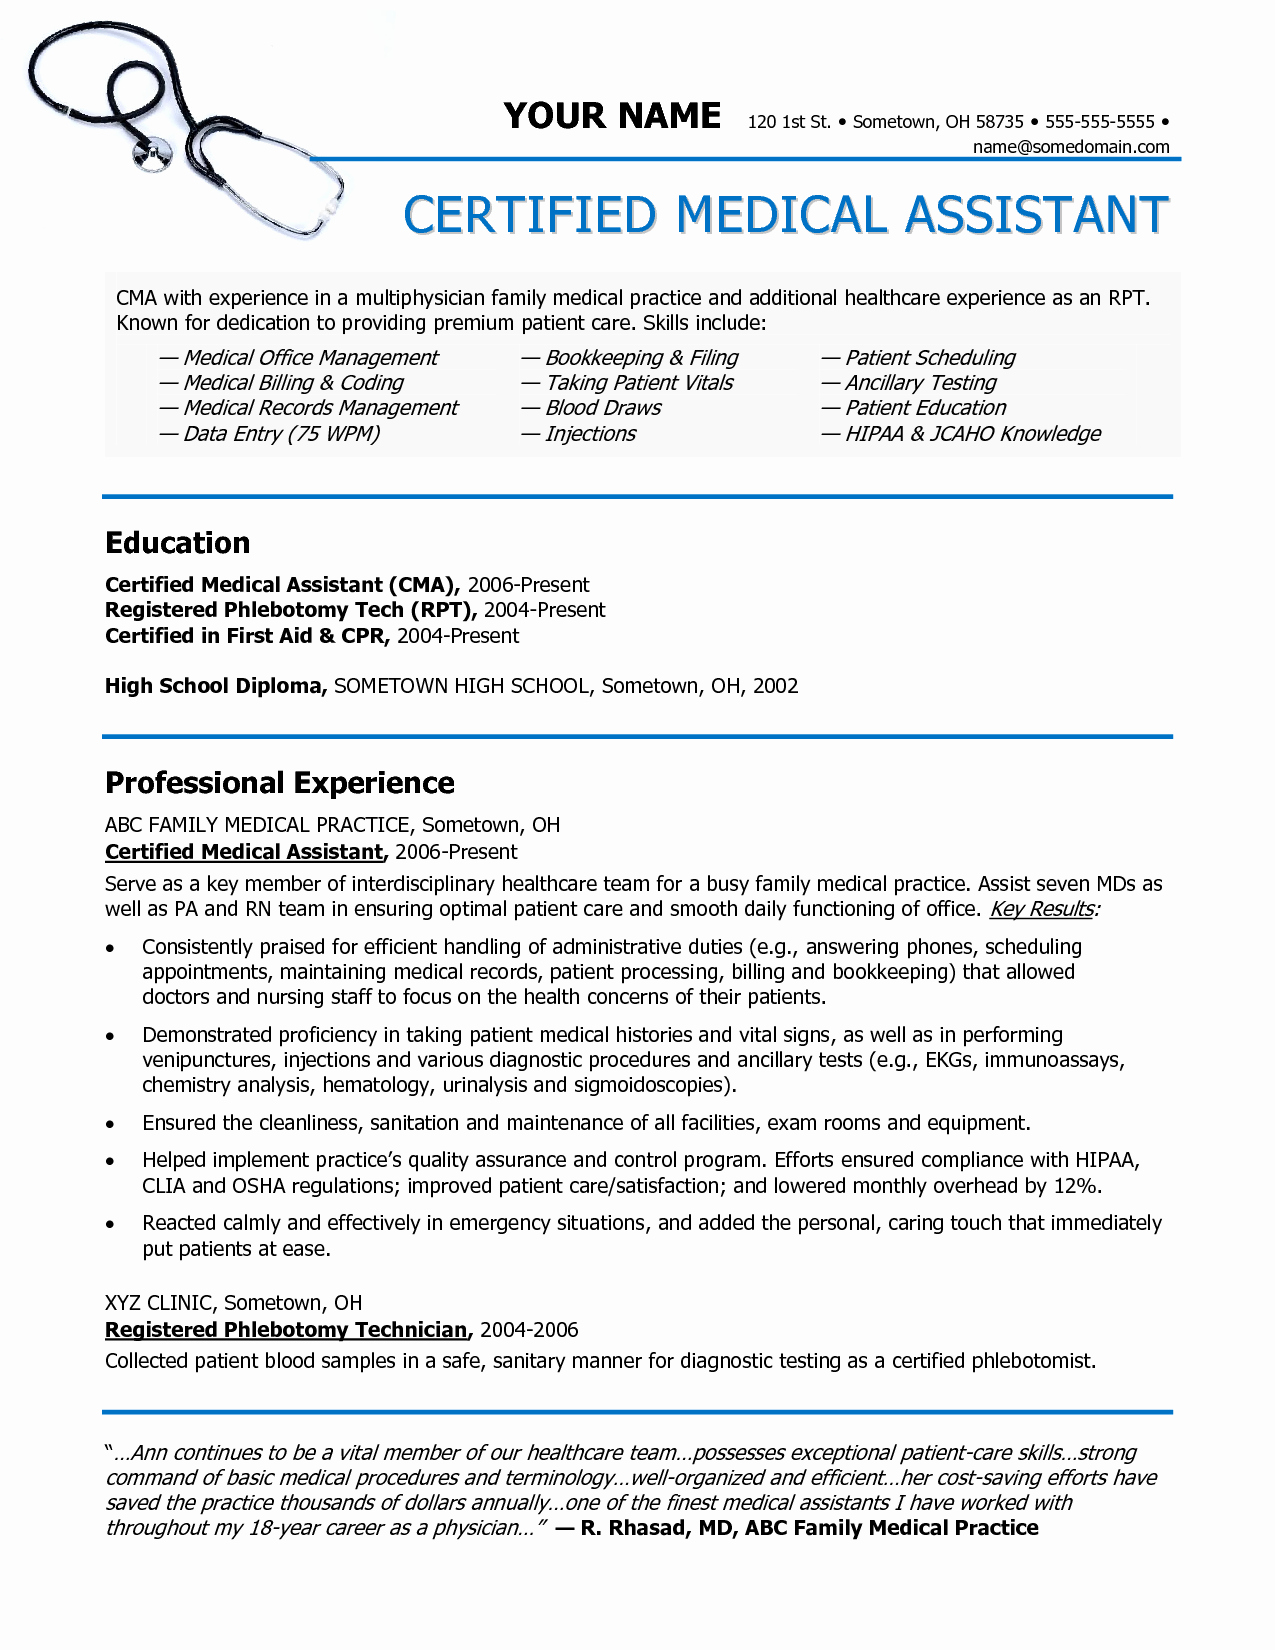 Medical assistant Resume Samples Medical assistant Job